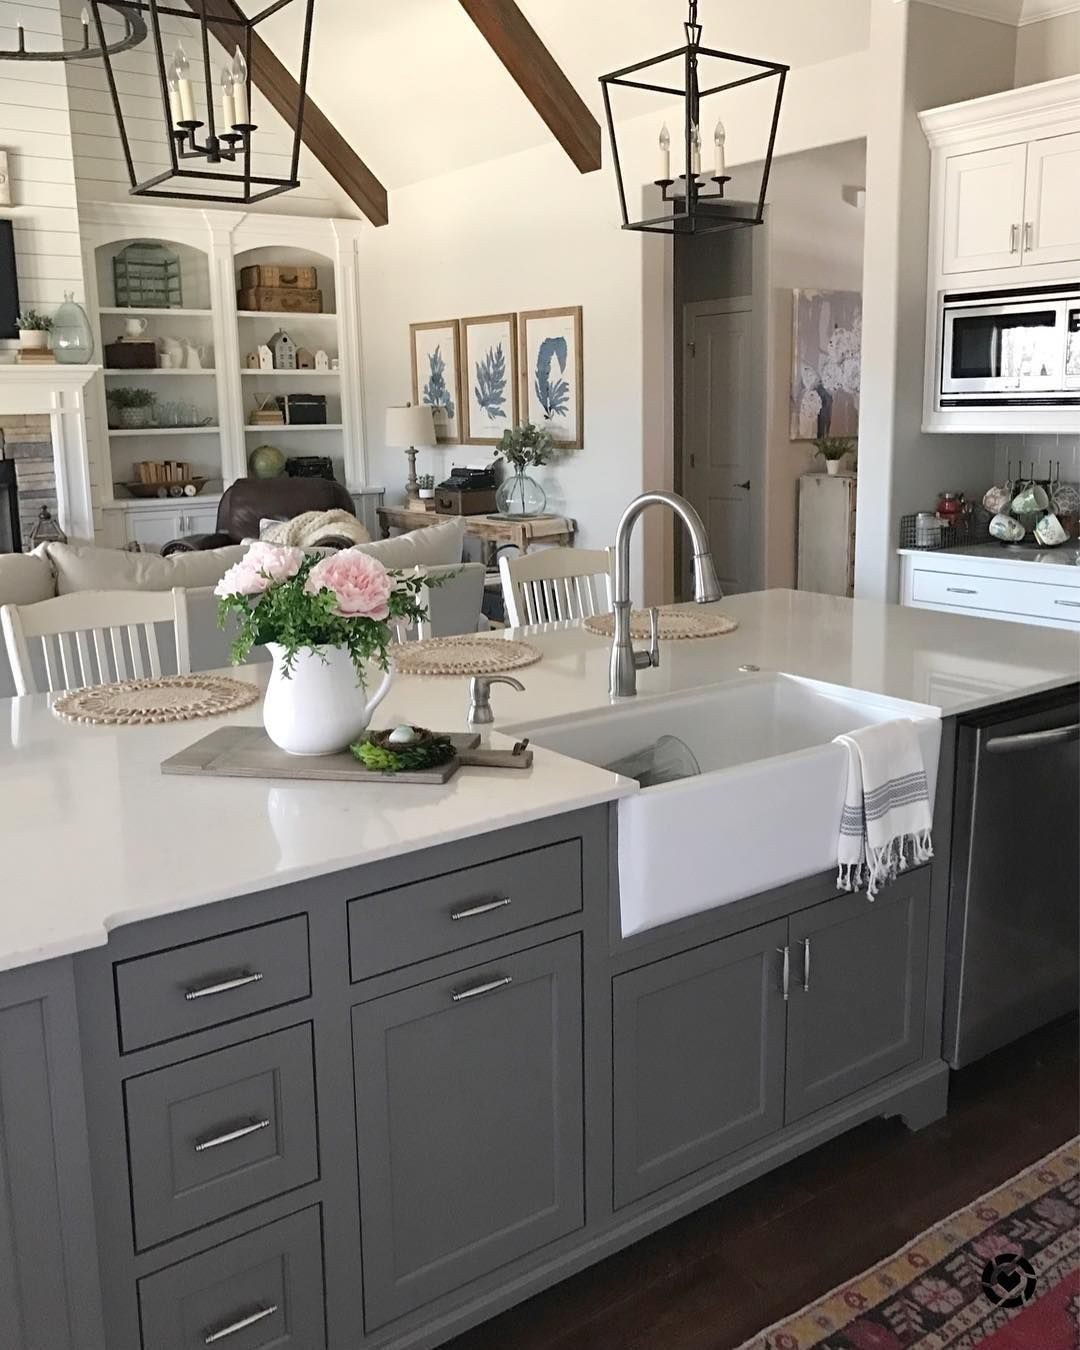 52 Farmhouse Sink Pros Cons With Images Home Decor Kitchen Kitchen Design Farmhouse Sink Kitchen